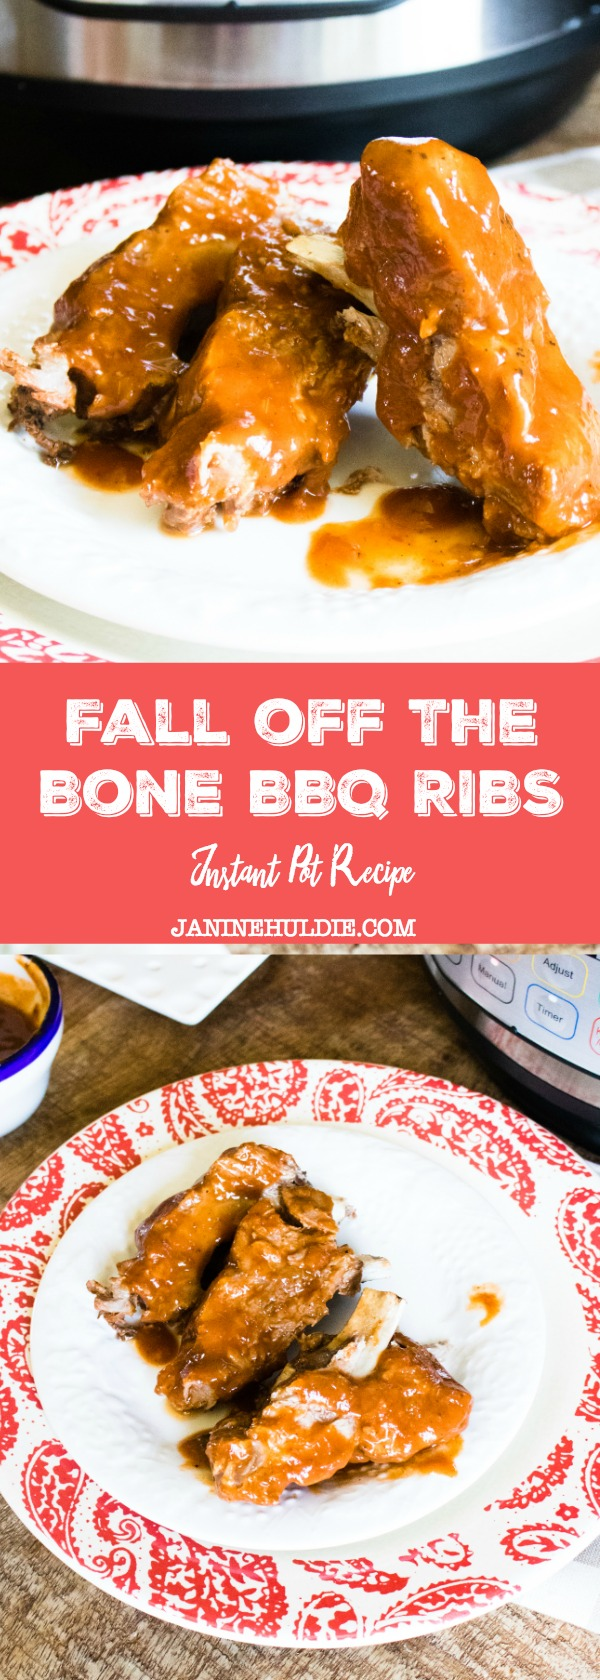 Fall of the Bone BBQ Ribs Instant Pot Recipe